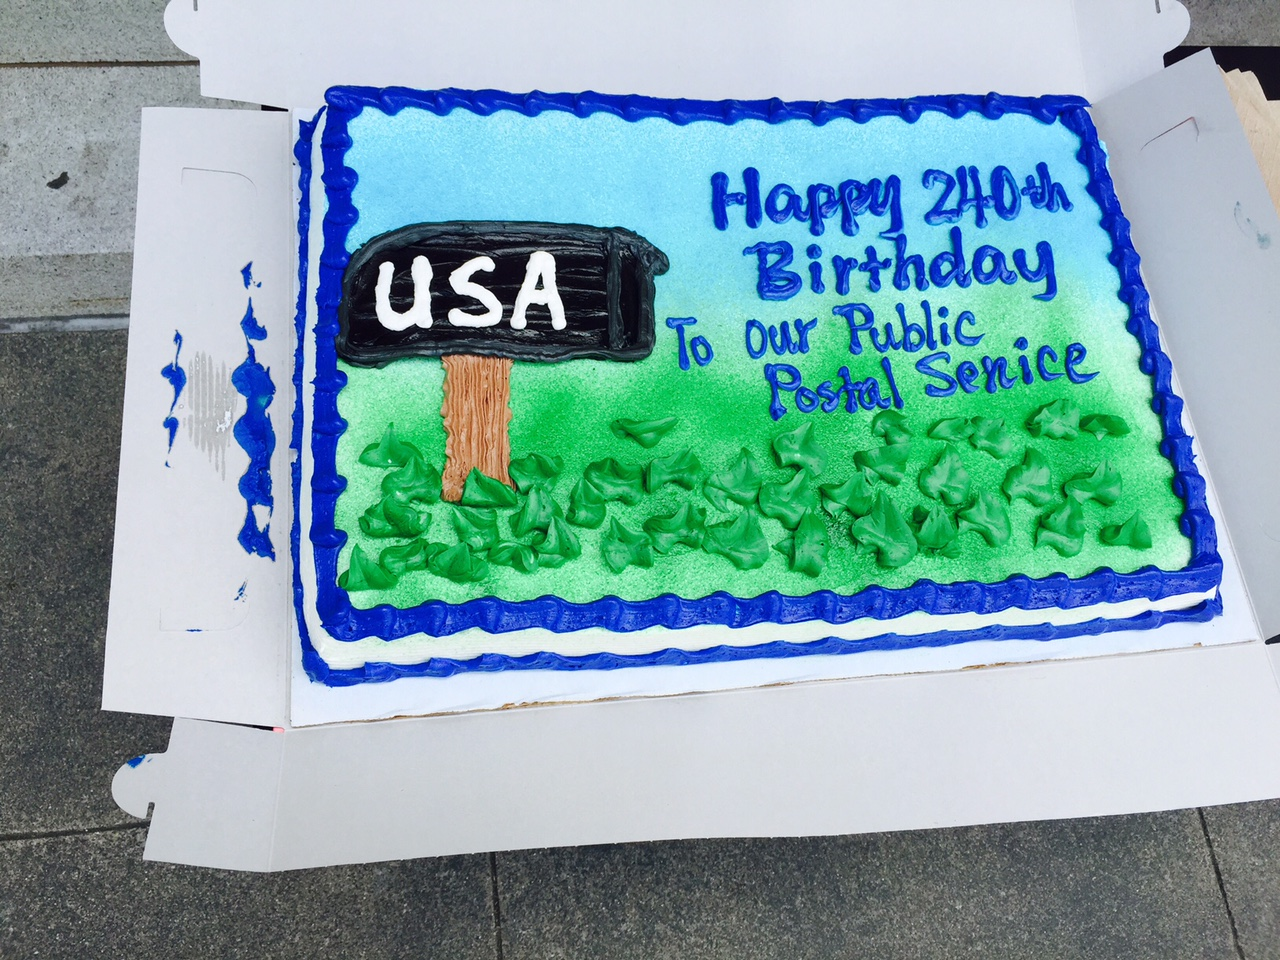 Locals Celebrate Postal Heritage Day | American Postal Workers Union